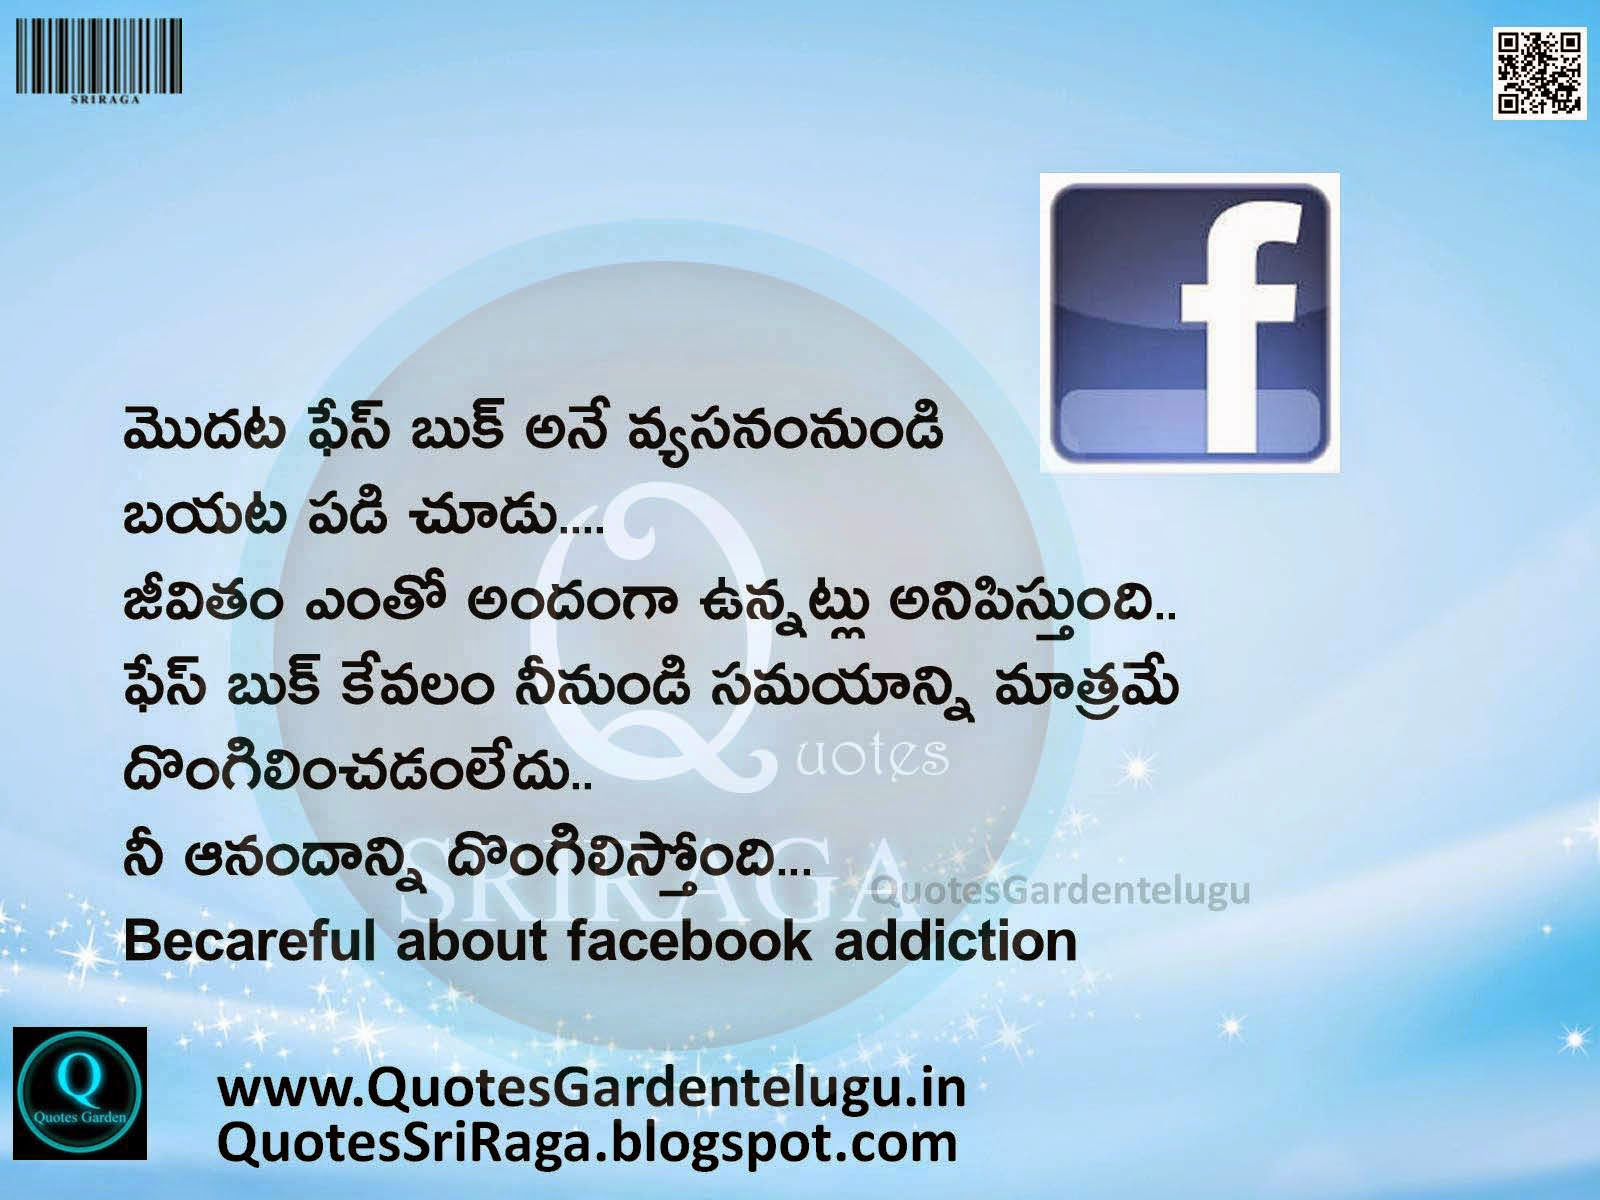 anti face book addiction quotes Face Book Addition wallpapers images